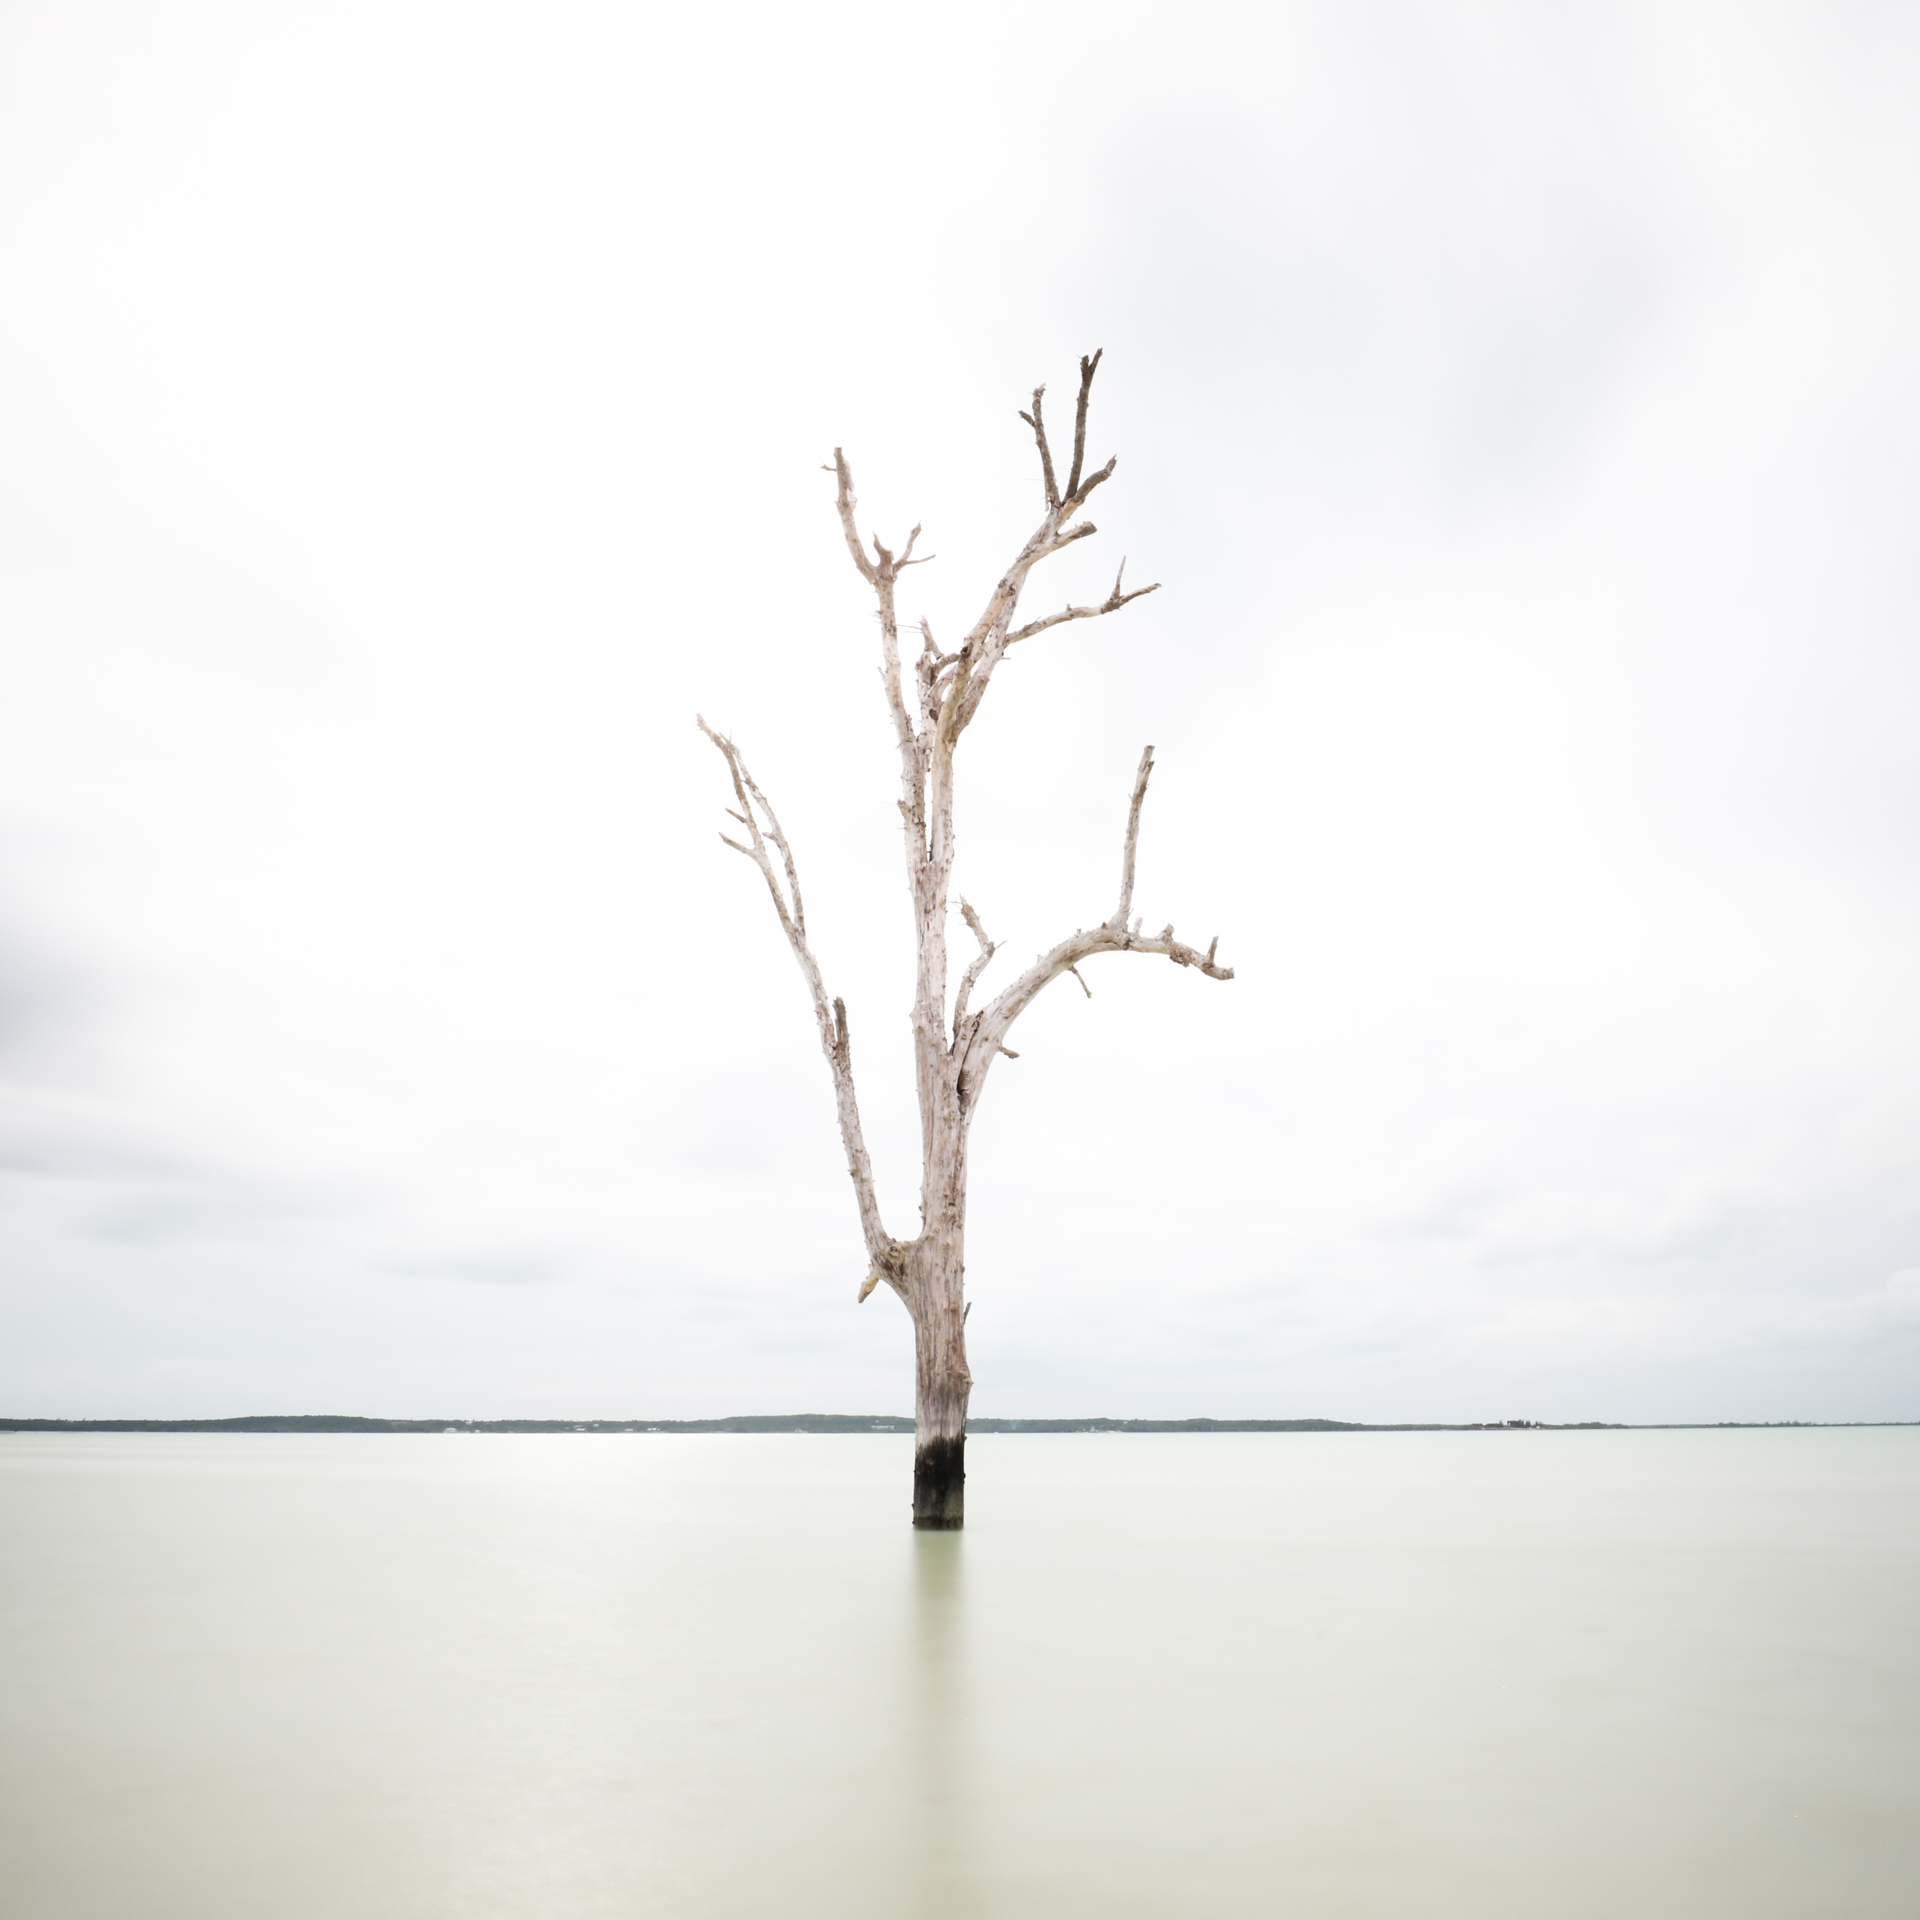 Tall Tree at Harbour Island by Keith Ramsdell